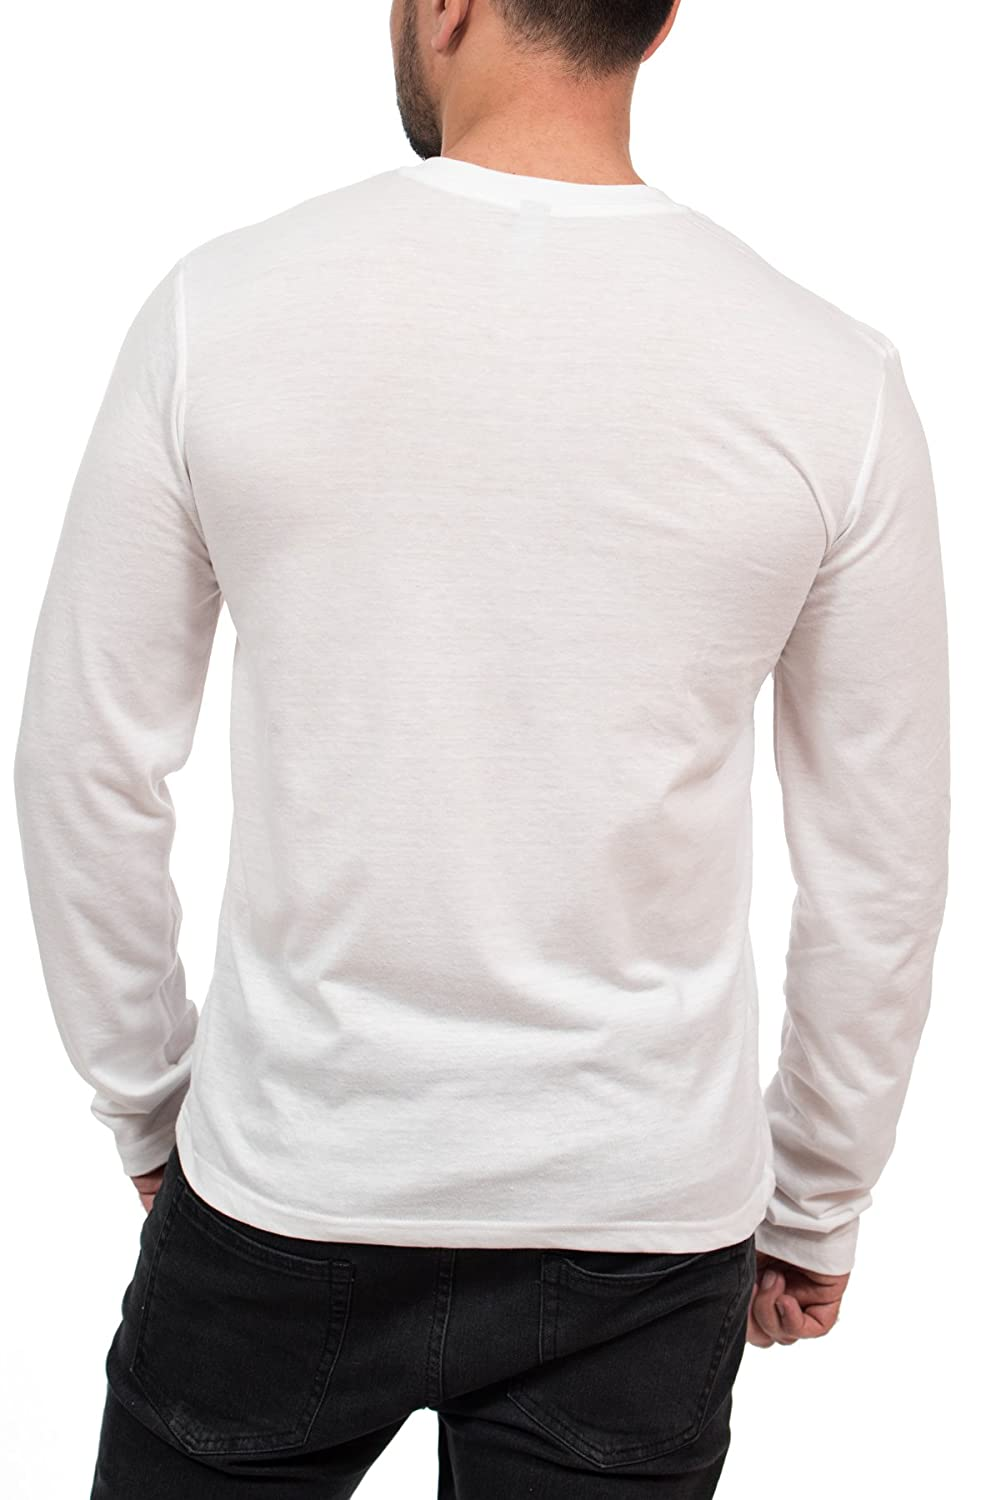 5f4319f8e127 MTL Apparel Henley 3-Button Mens Long Sleeve Fashion T-Shirt larger image